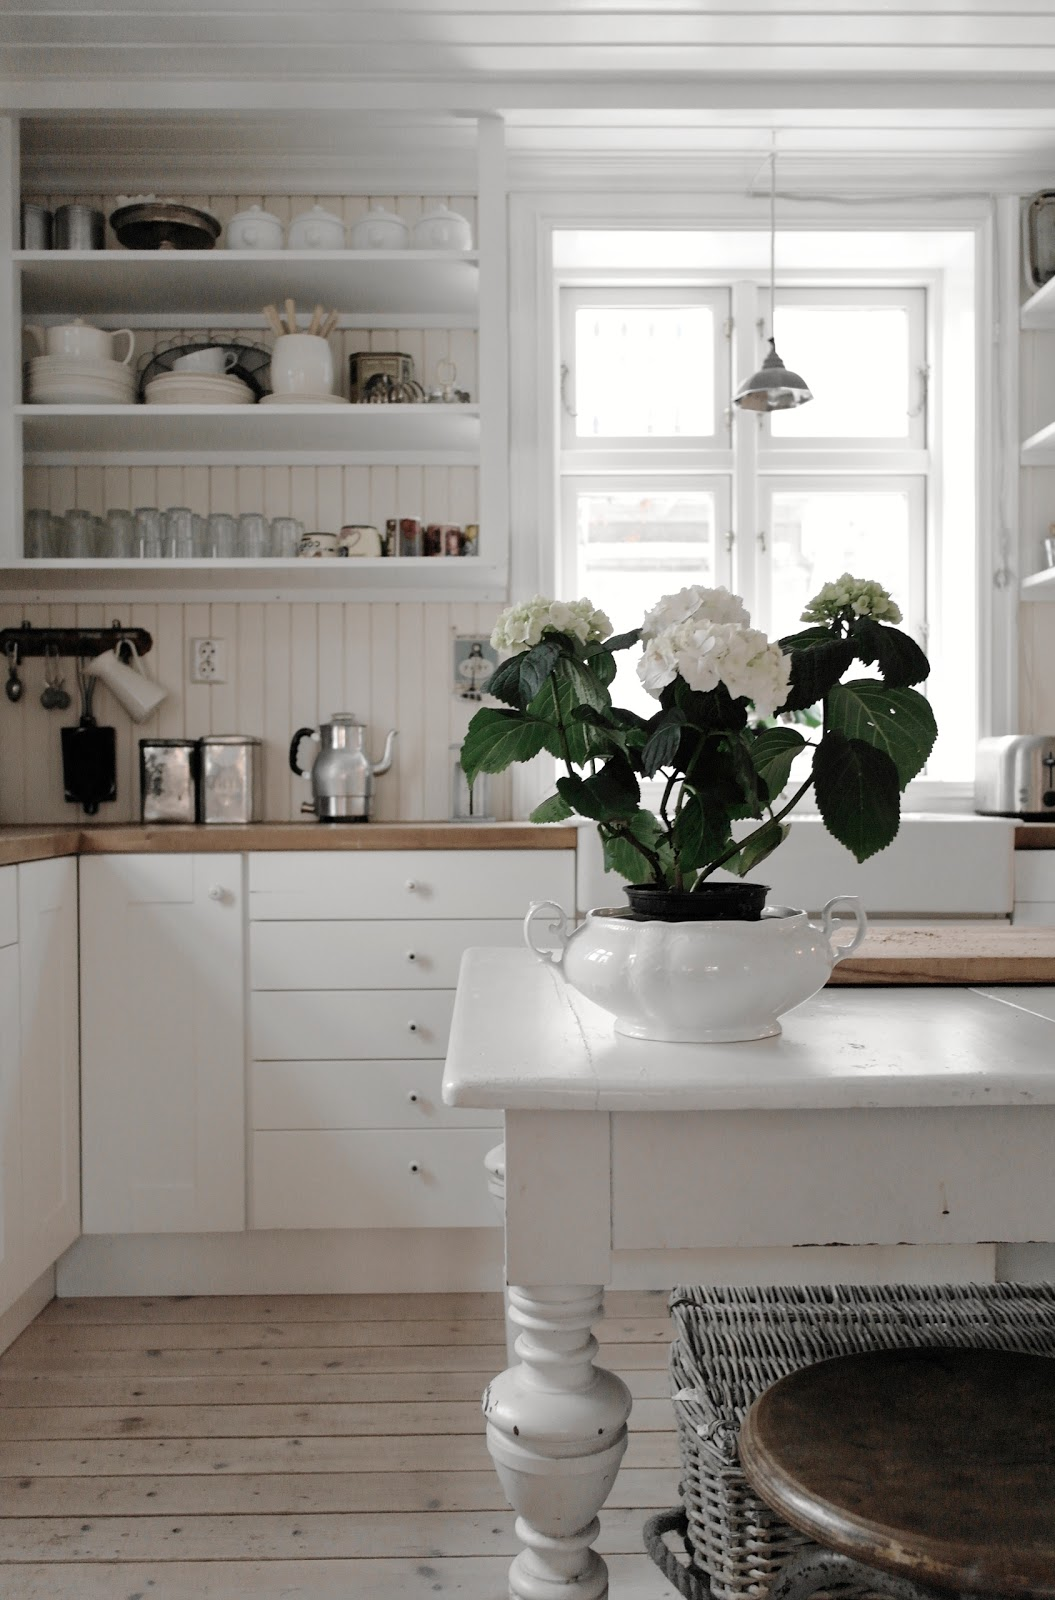 Kitchen Decorative Shelf 1000 43 Images About Kitchens Open Shelving On Pinterest